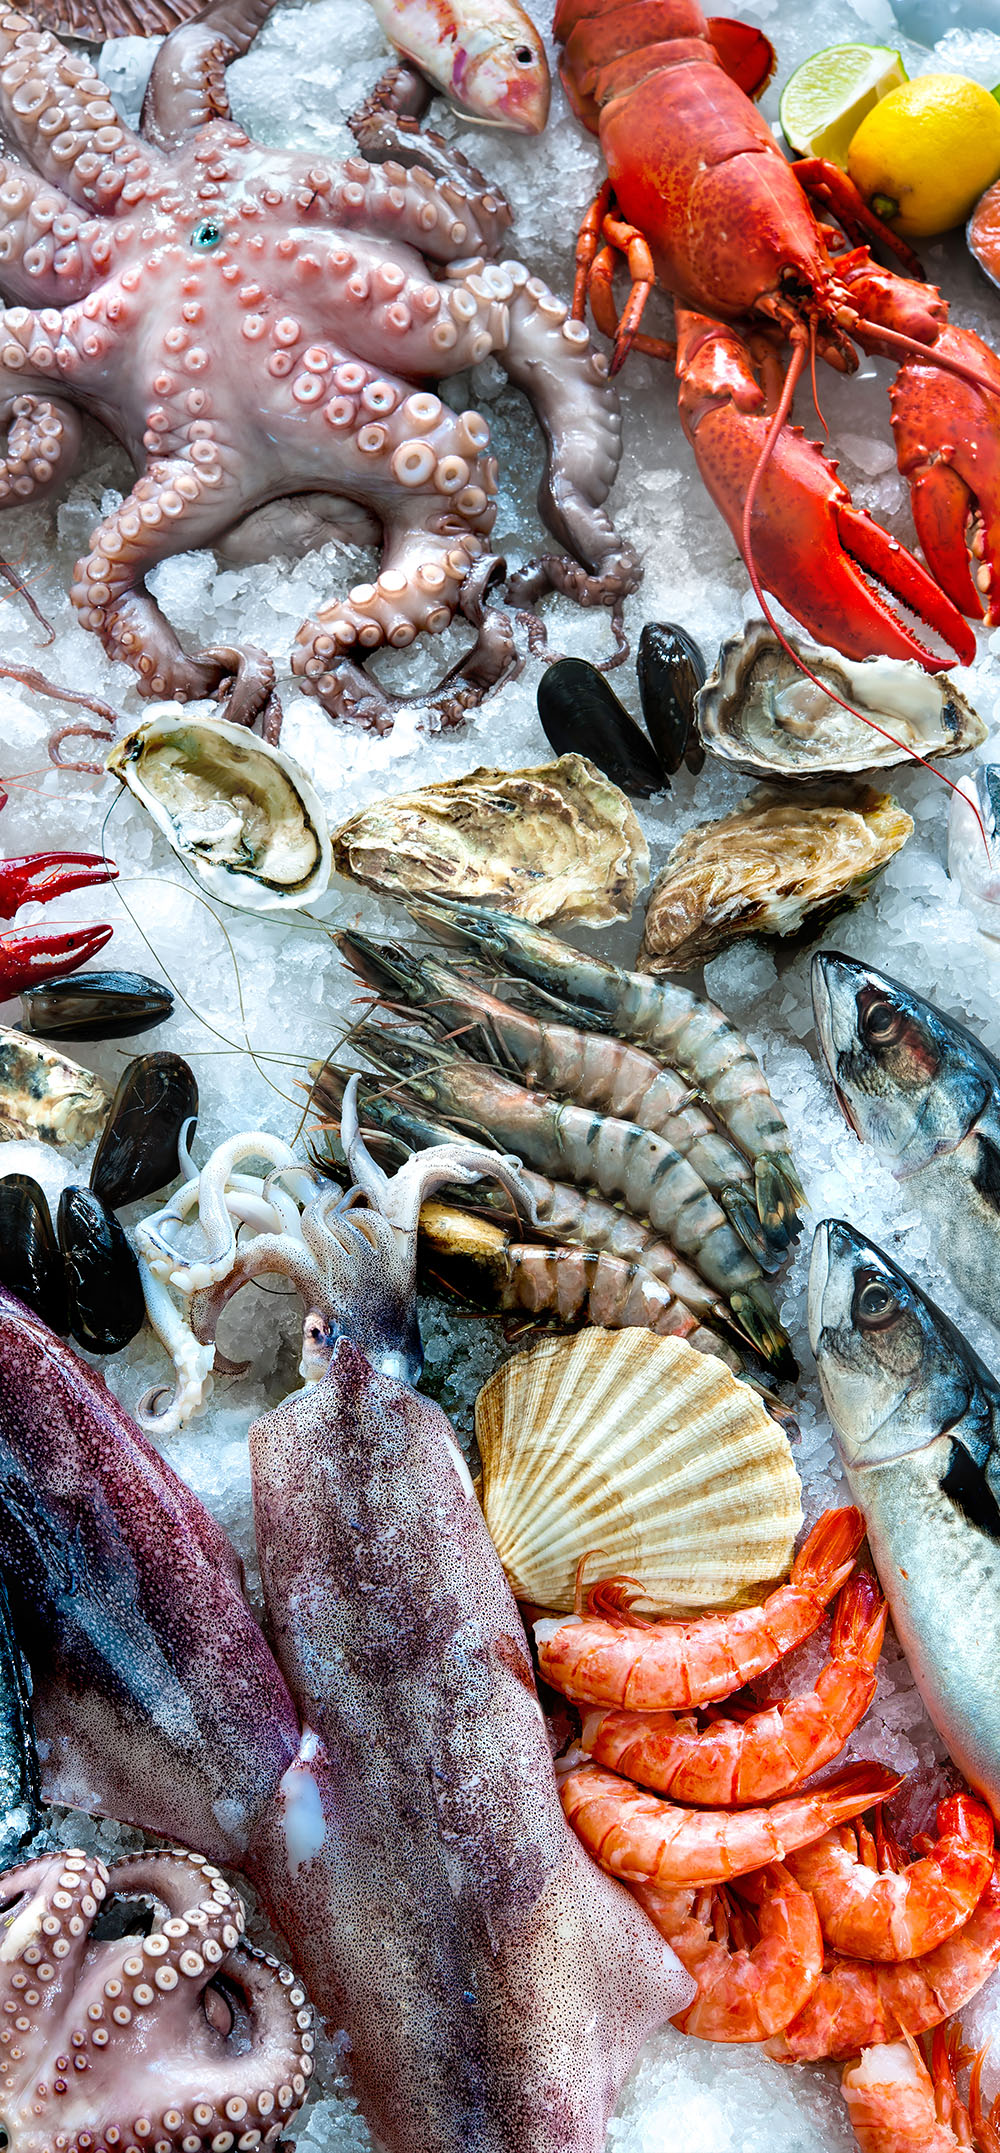 DAILY FISH & SEAFOOD SELECTION